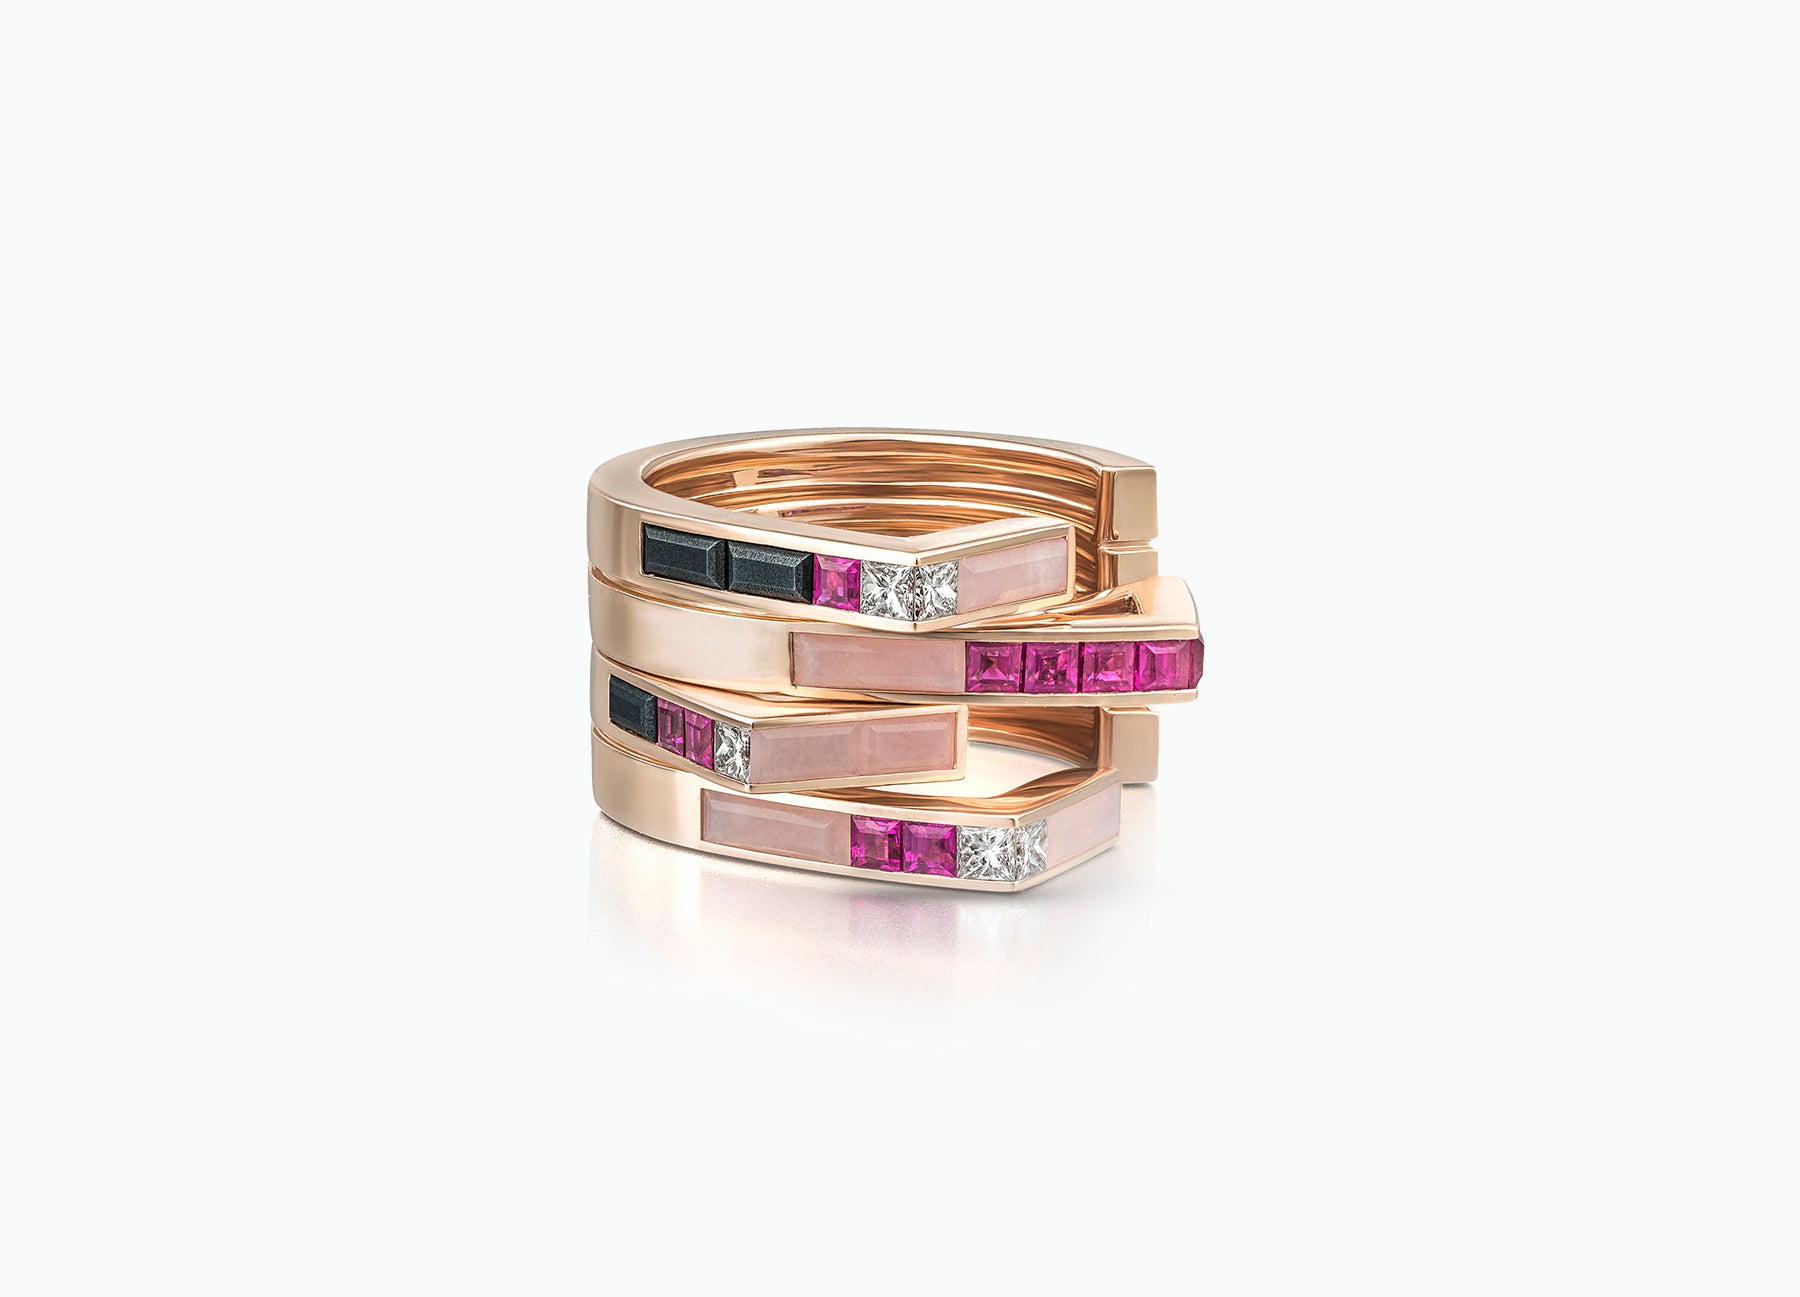 Stellar Pair of Stacking rings in 18K rose gold set with rubies and diamonds and pink opal by Tomasz Donocik Seen together